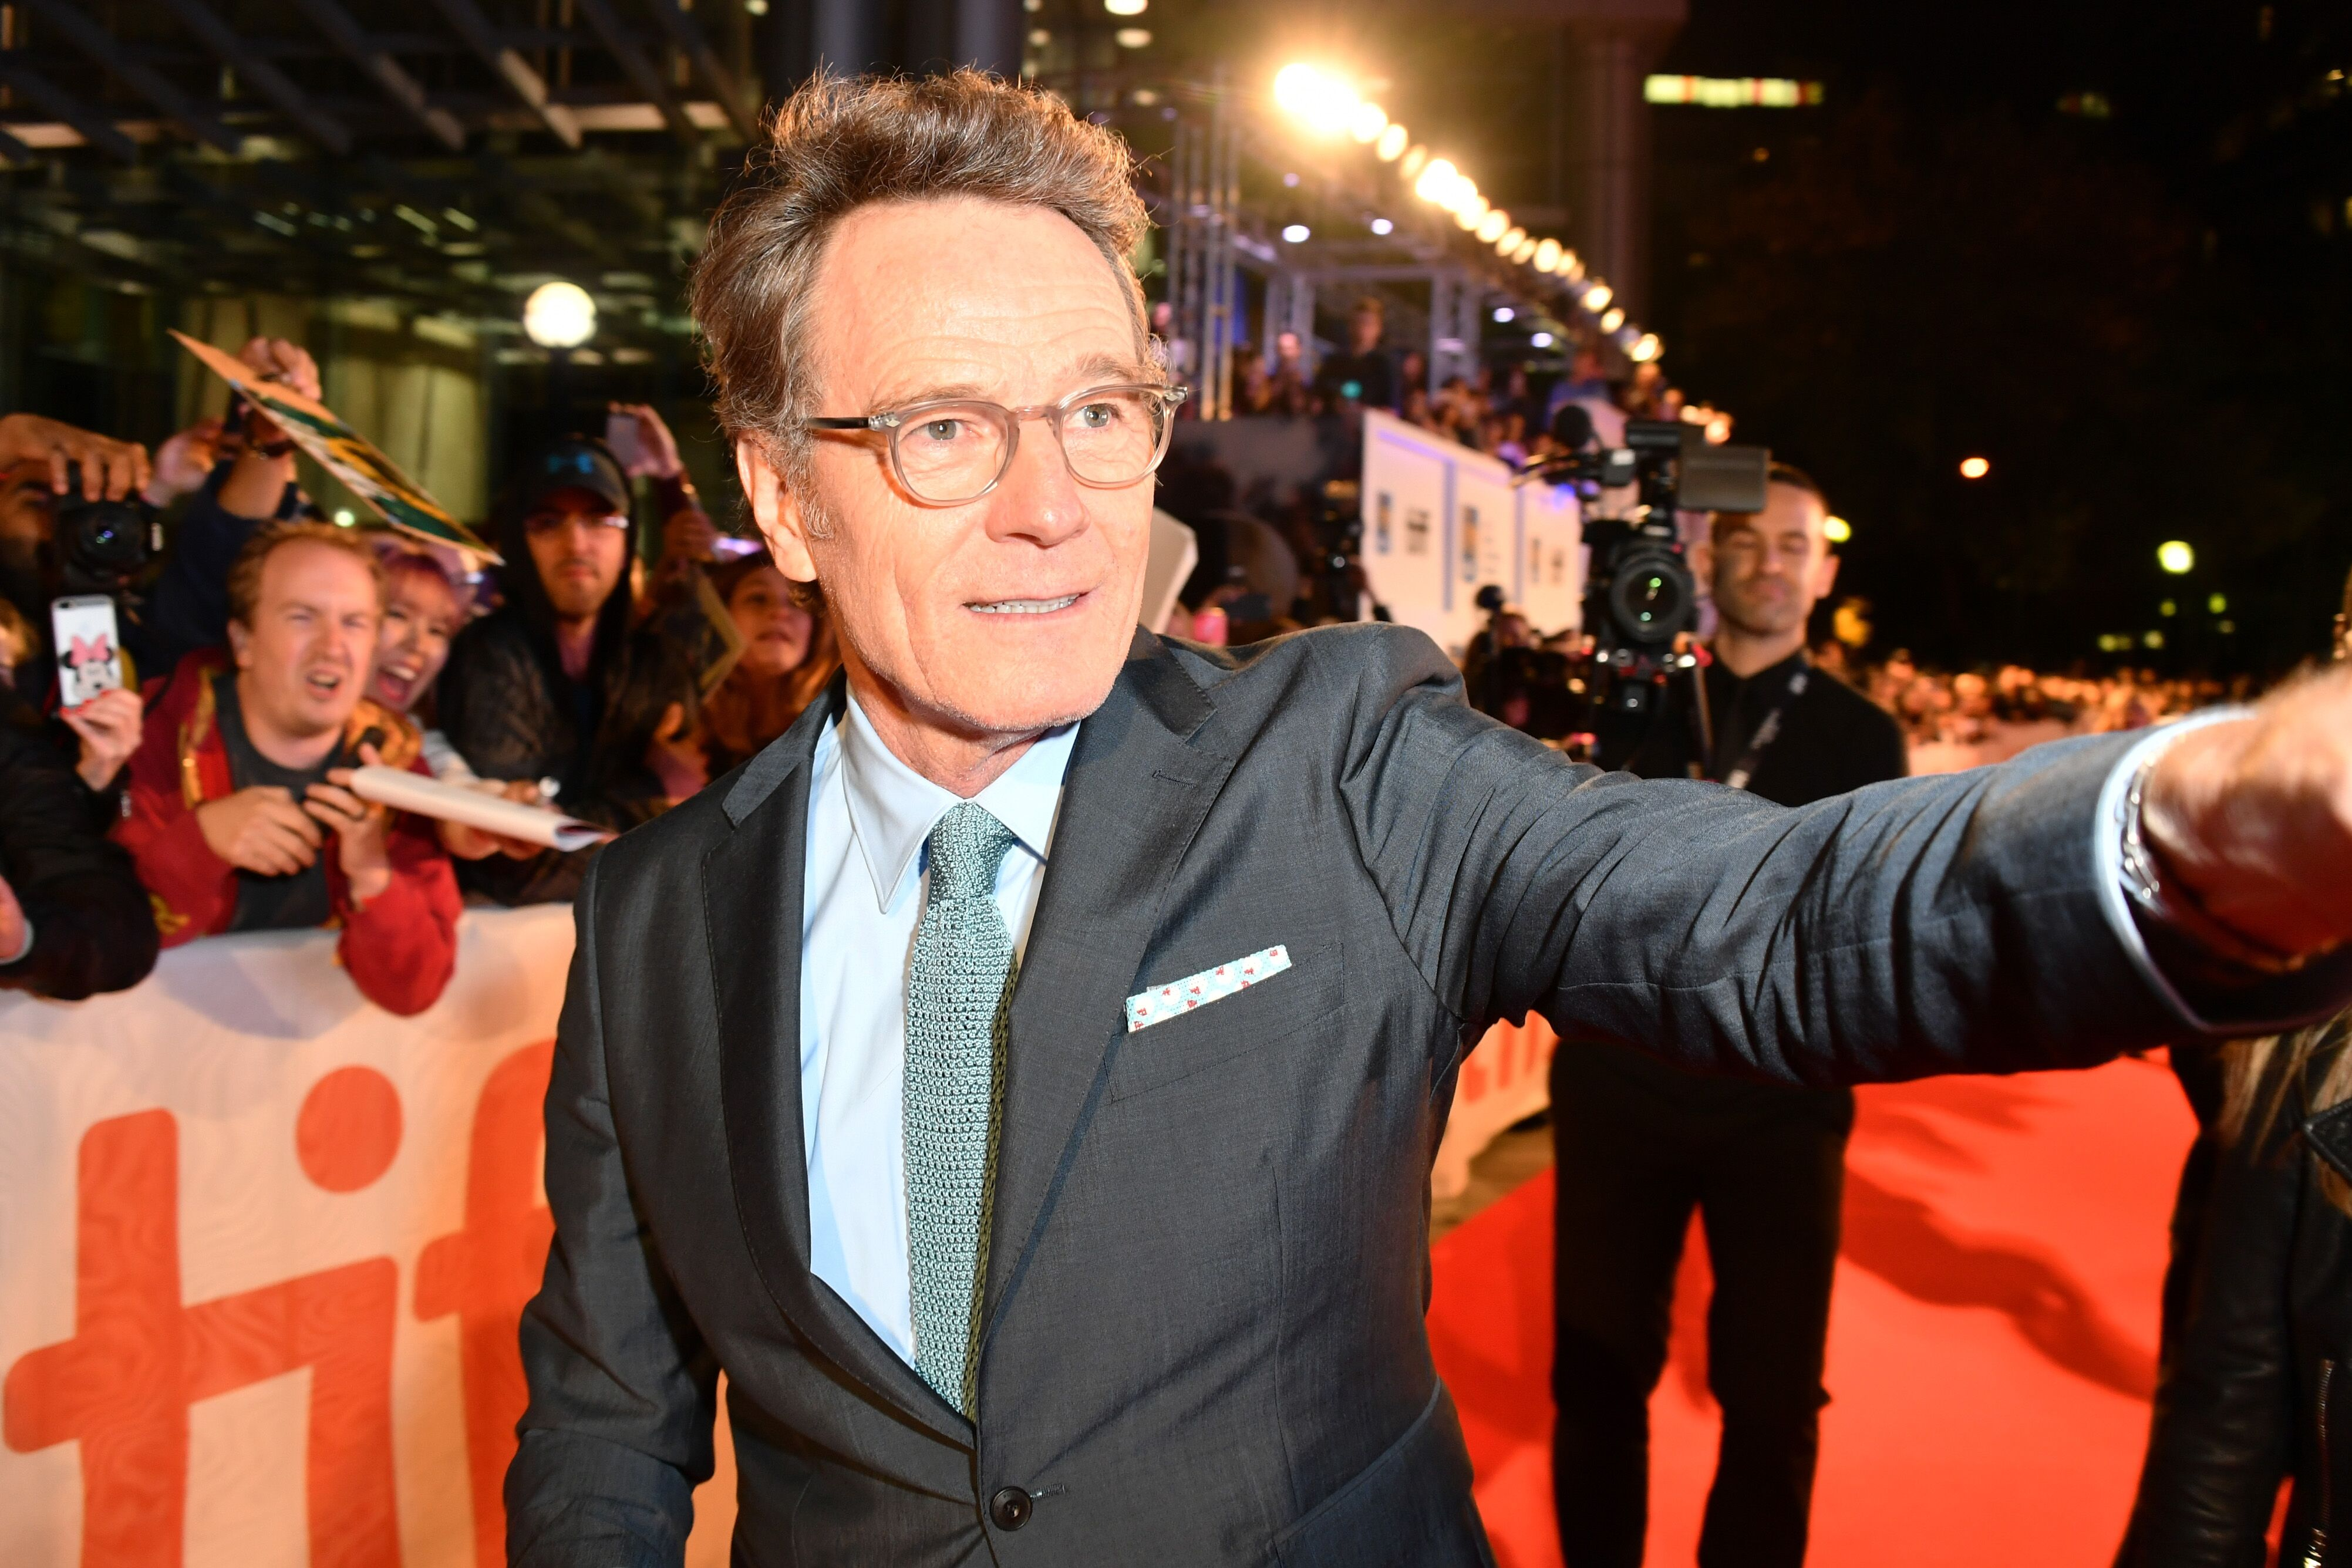 Bryan Cranston may play Sully in Uncharted movie